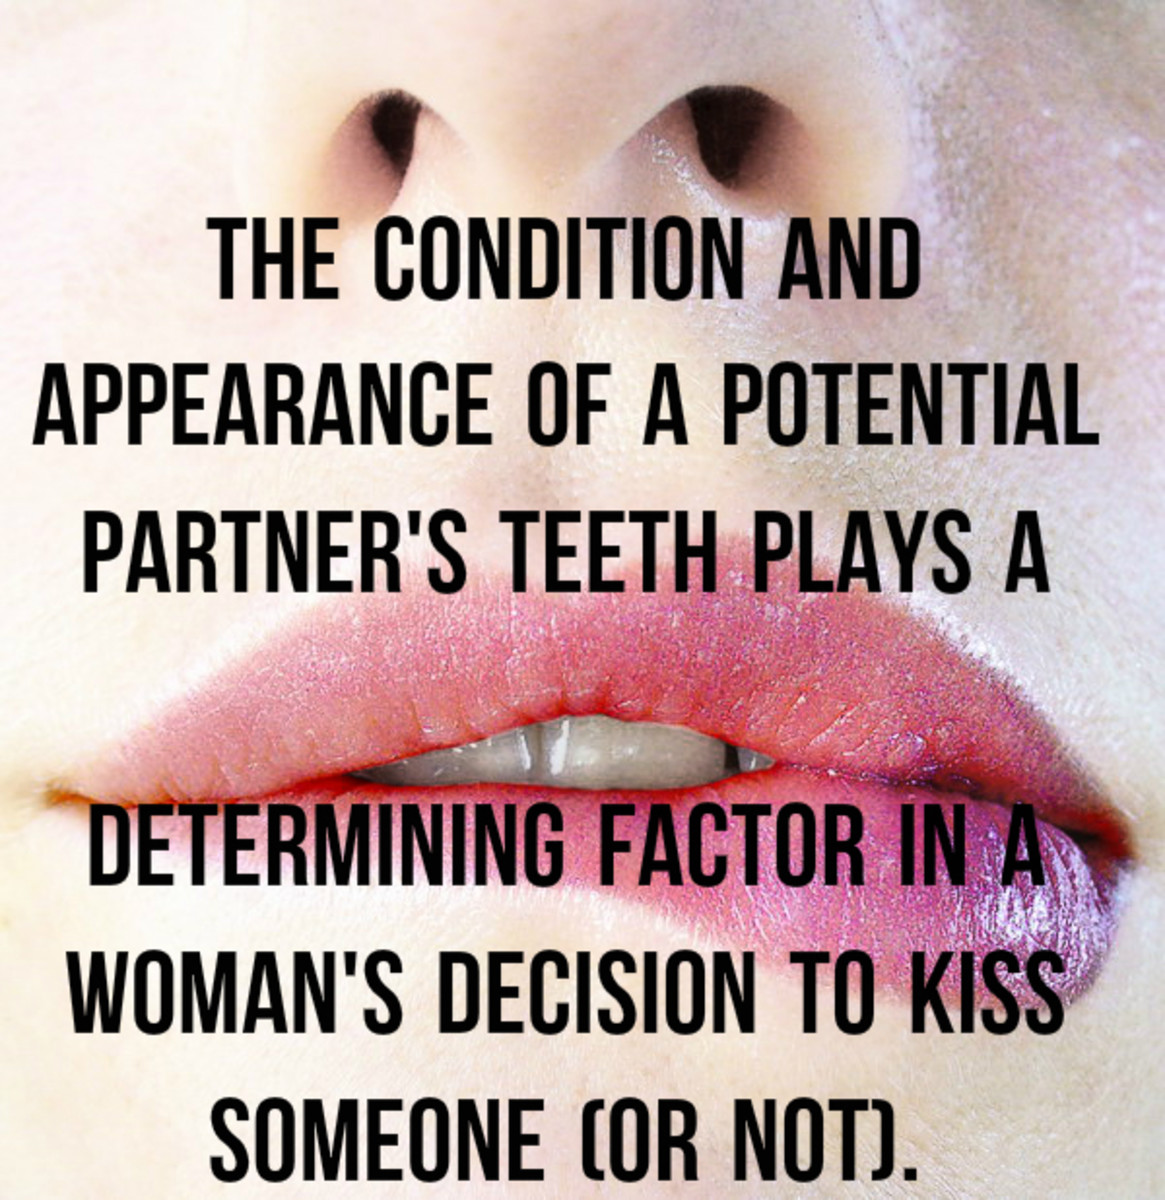 The condition and appearance of a potential partner's teeth plays a determining factor in a woman's decision to kiss someone (or not).